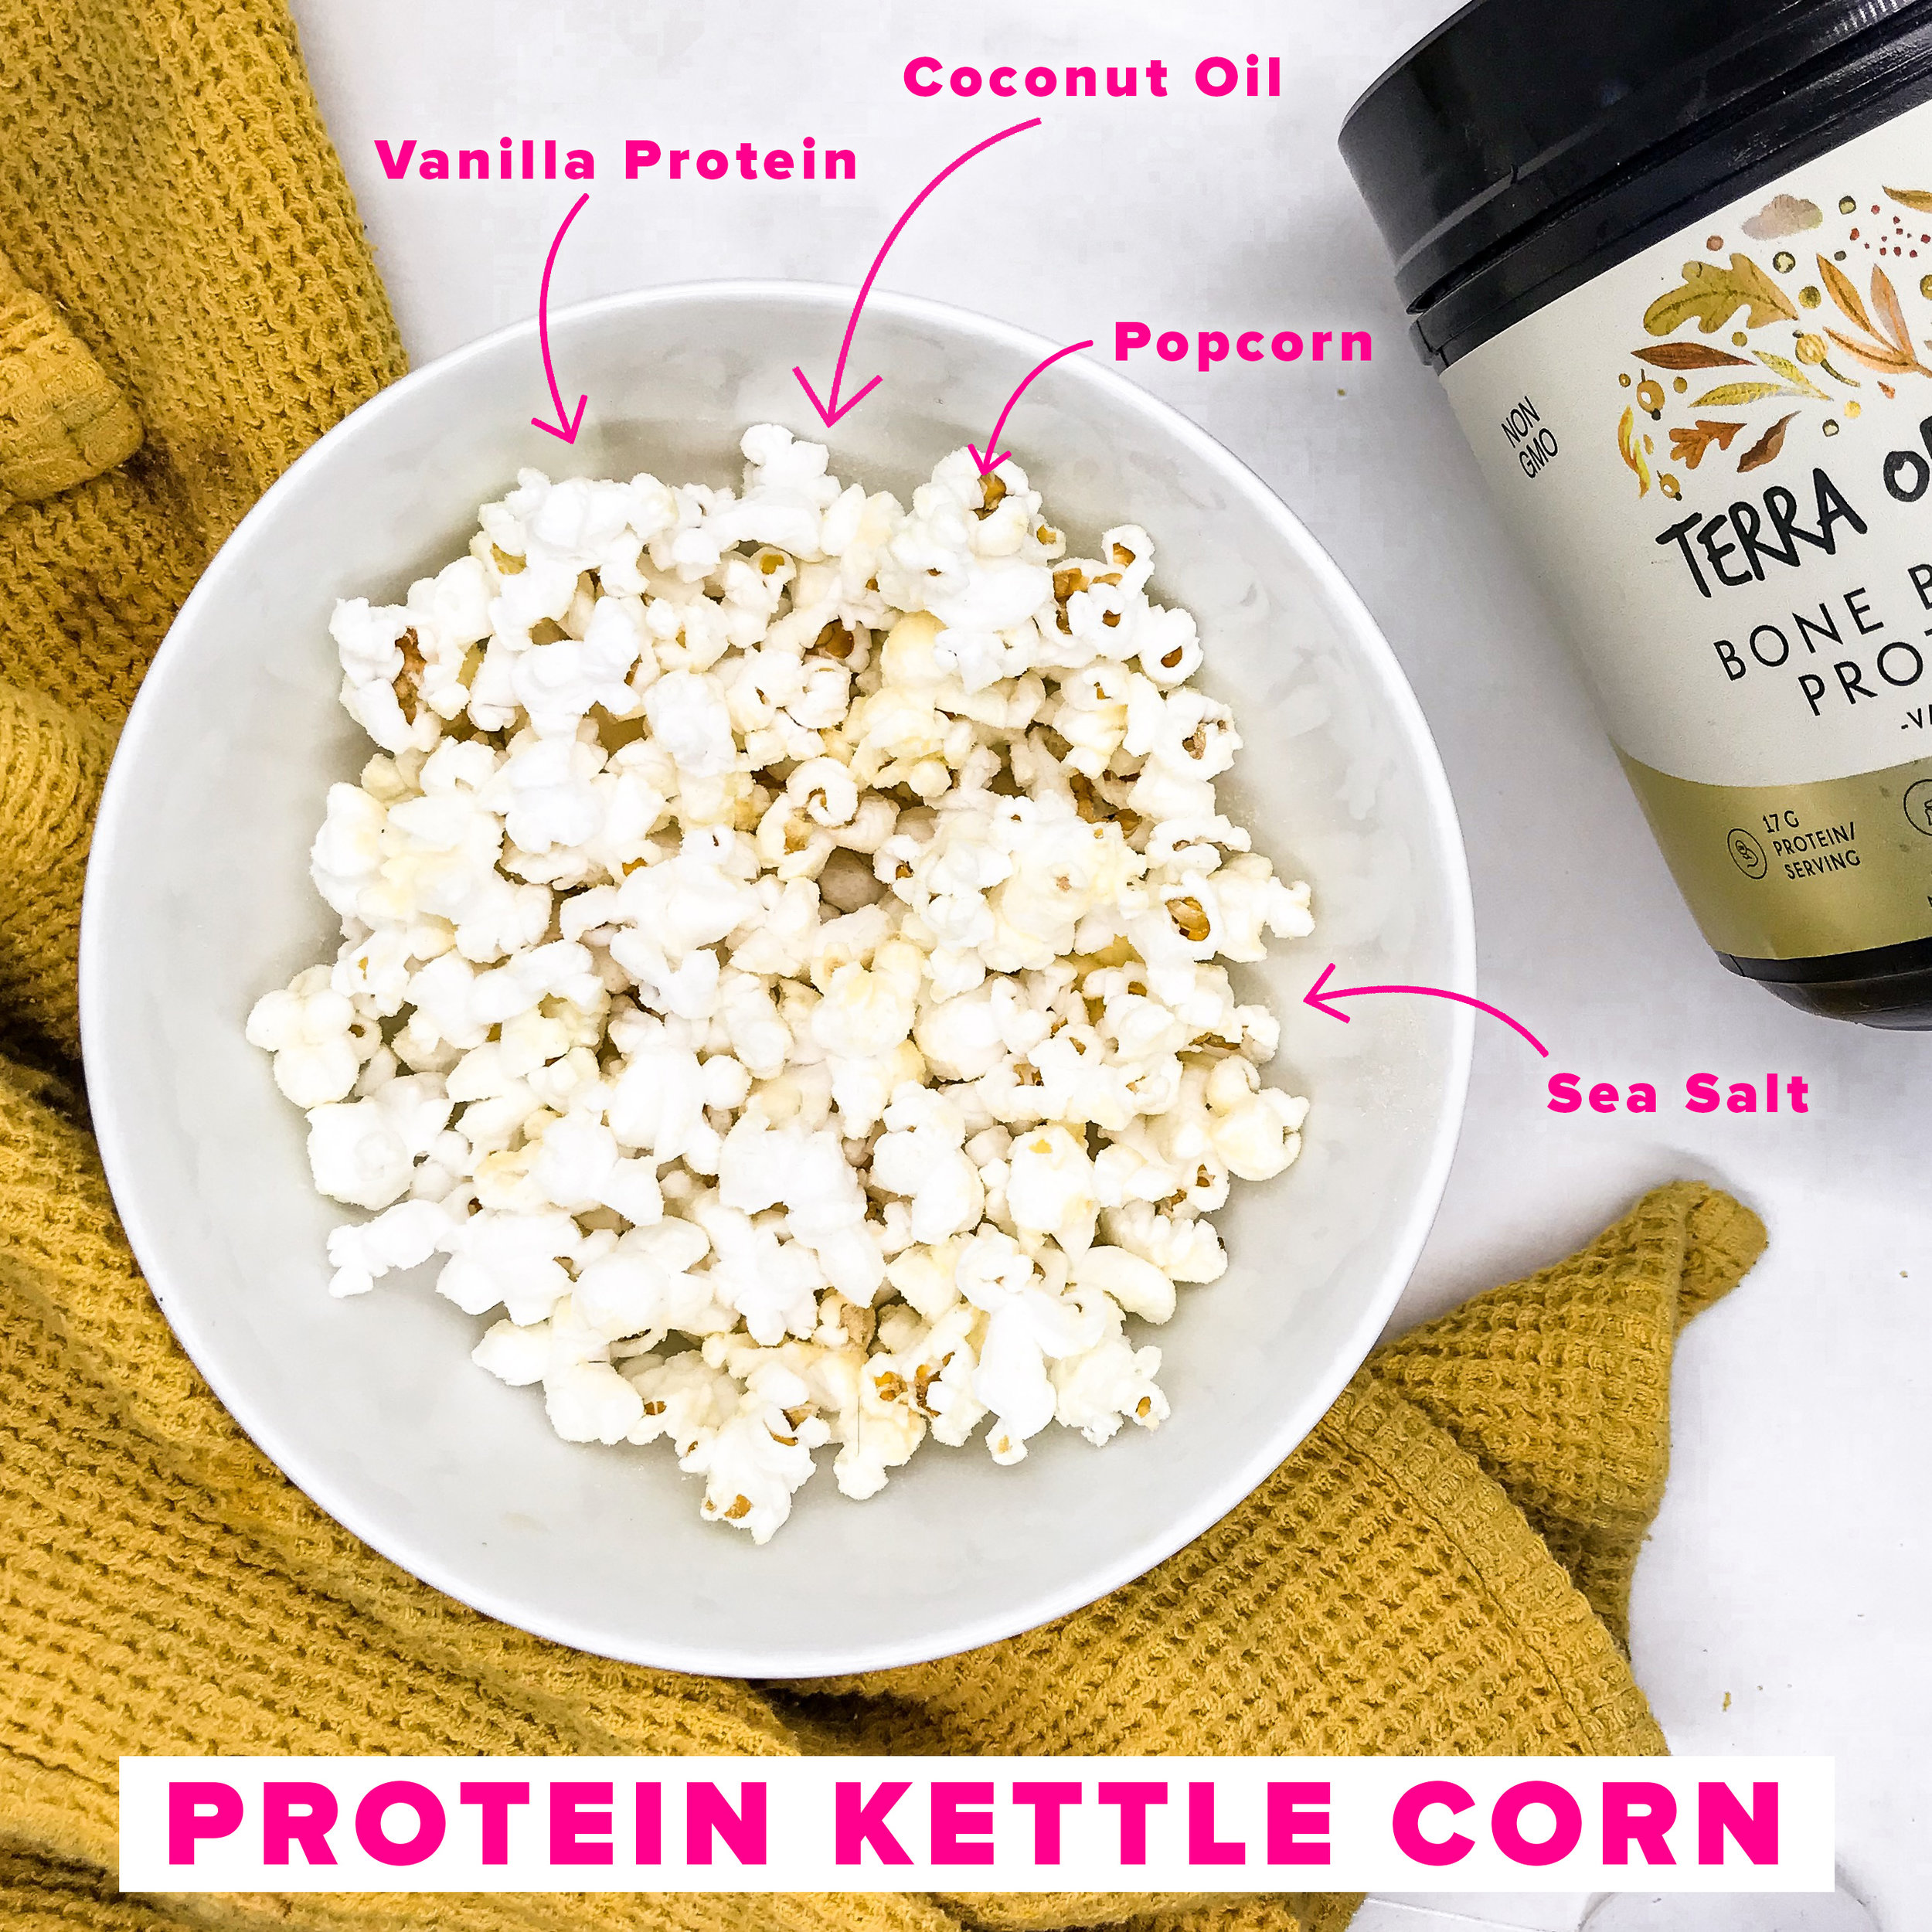 Protein Kettle Corn - Healthy snack options by Fitstagram Michelle